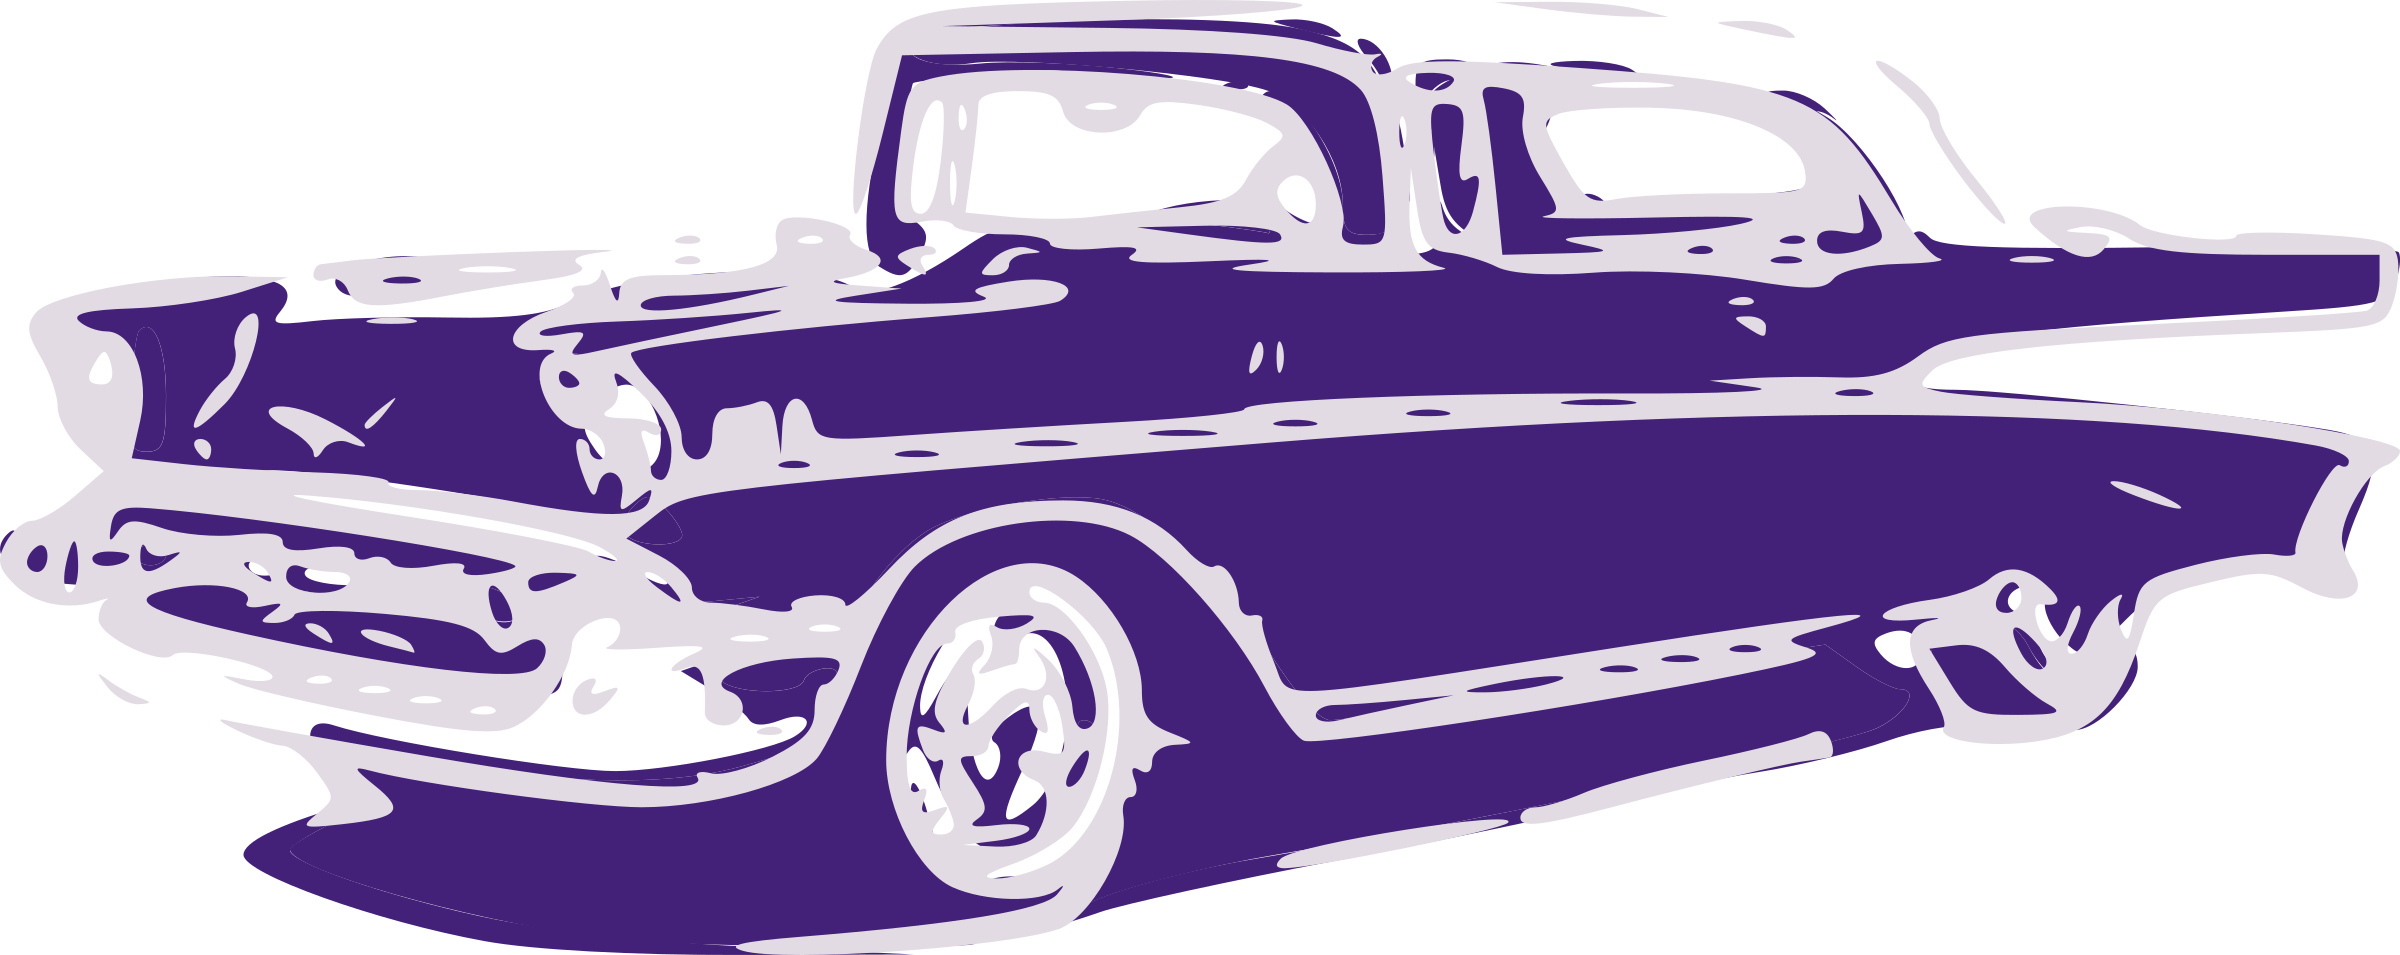 Car with hood open clipart image transparent download Classic Auto Cars. Good Classic Auto Cars With Classic Auto Cars ... image transparent download